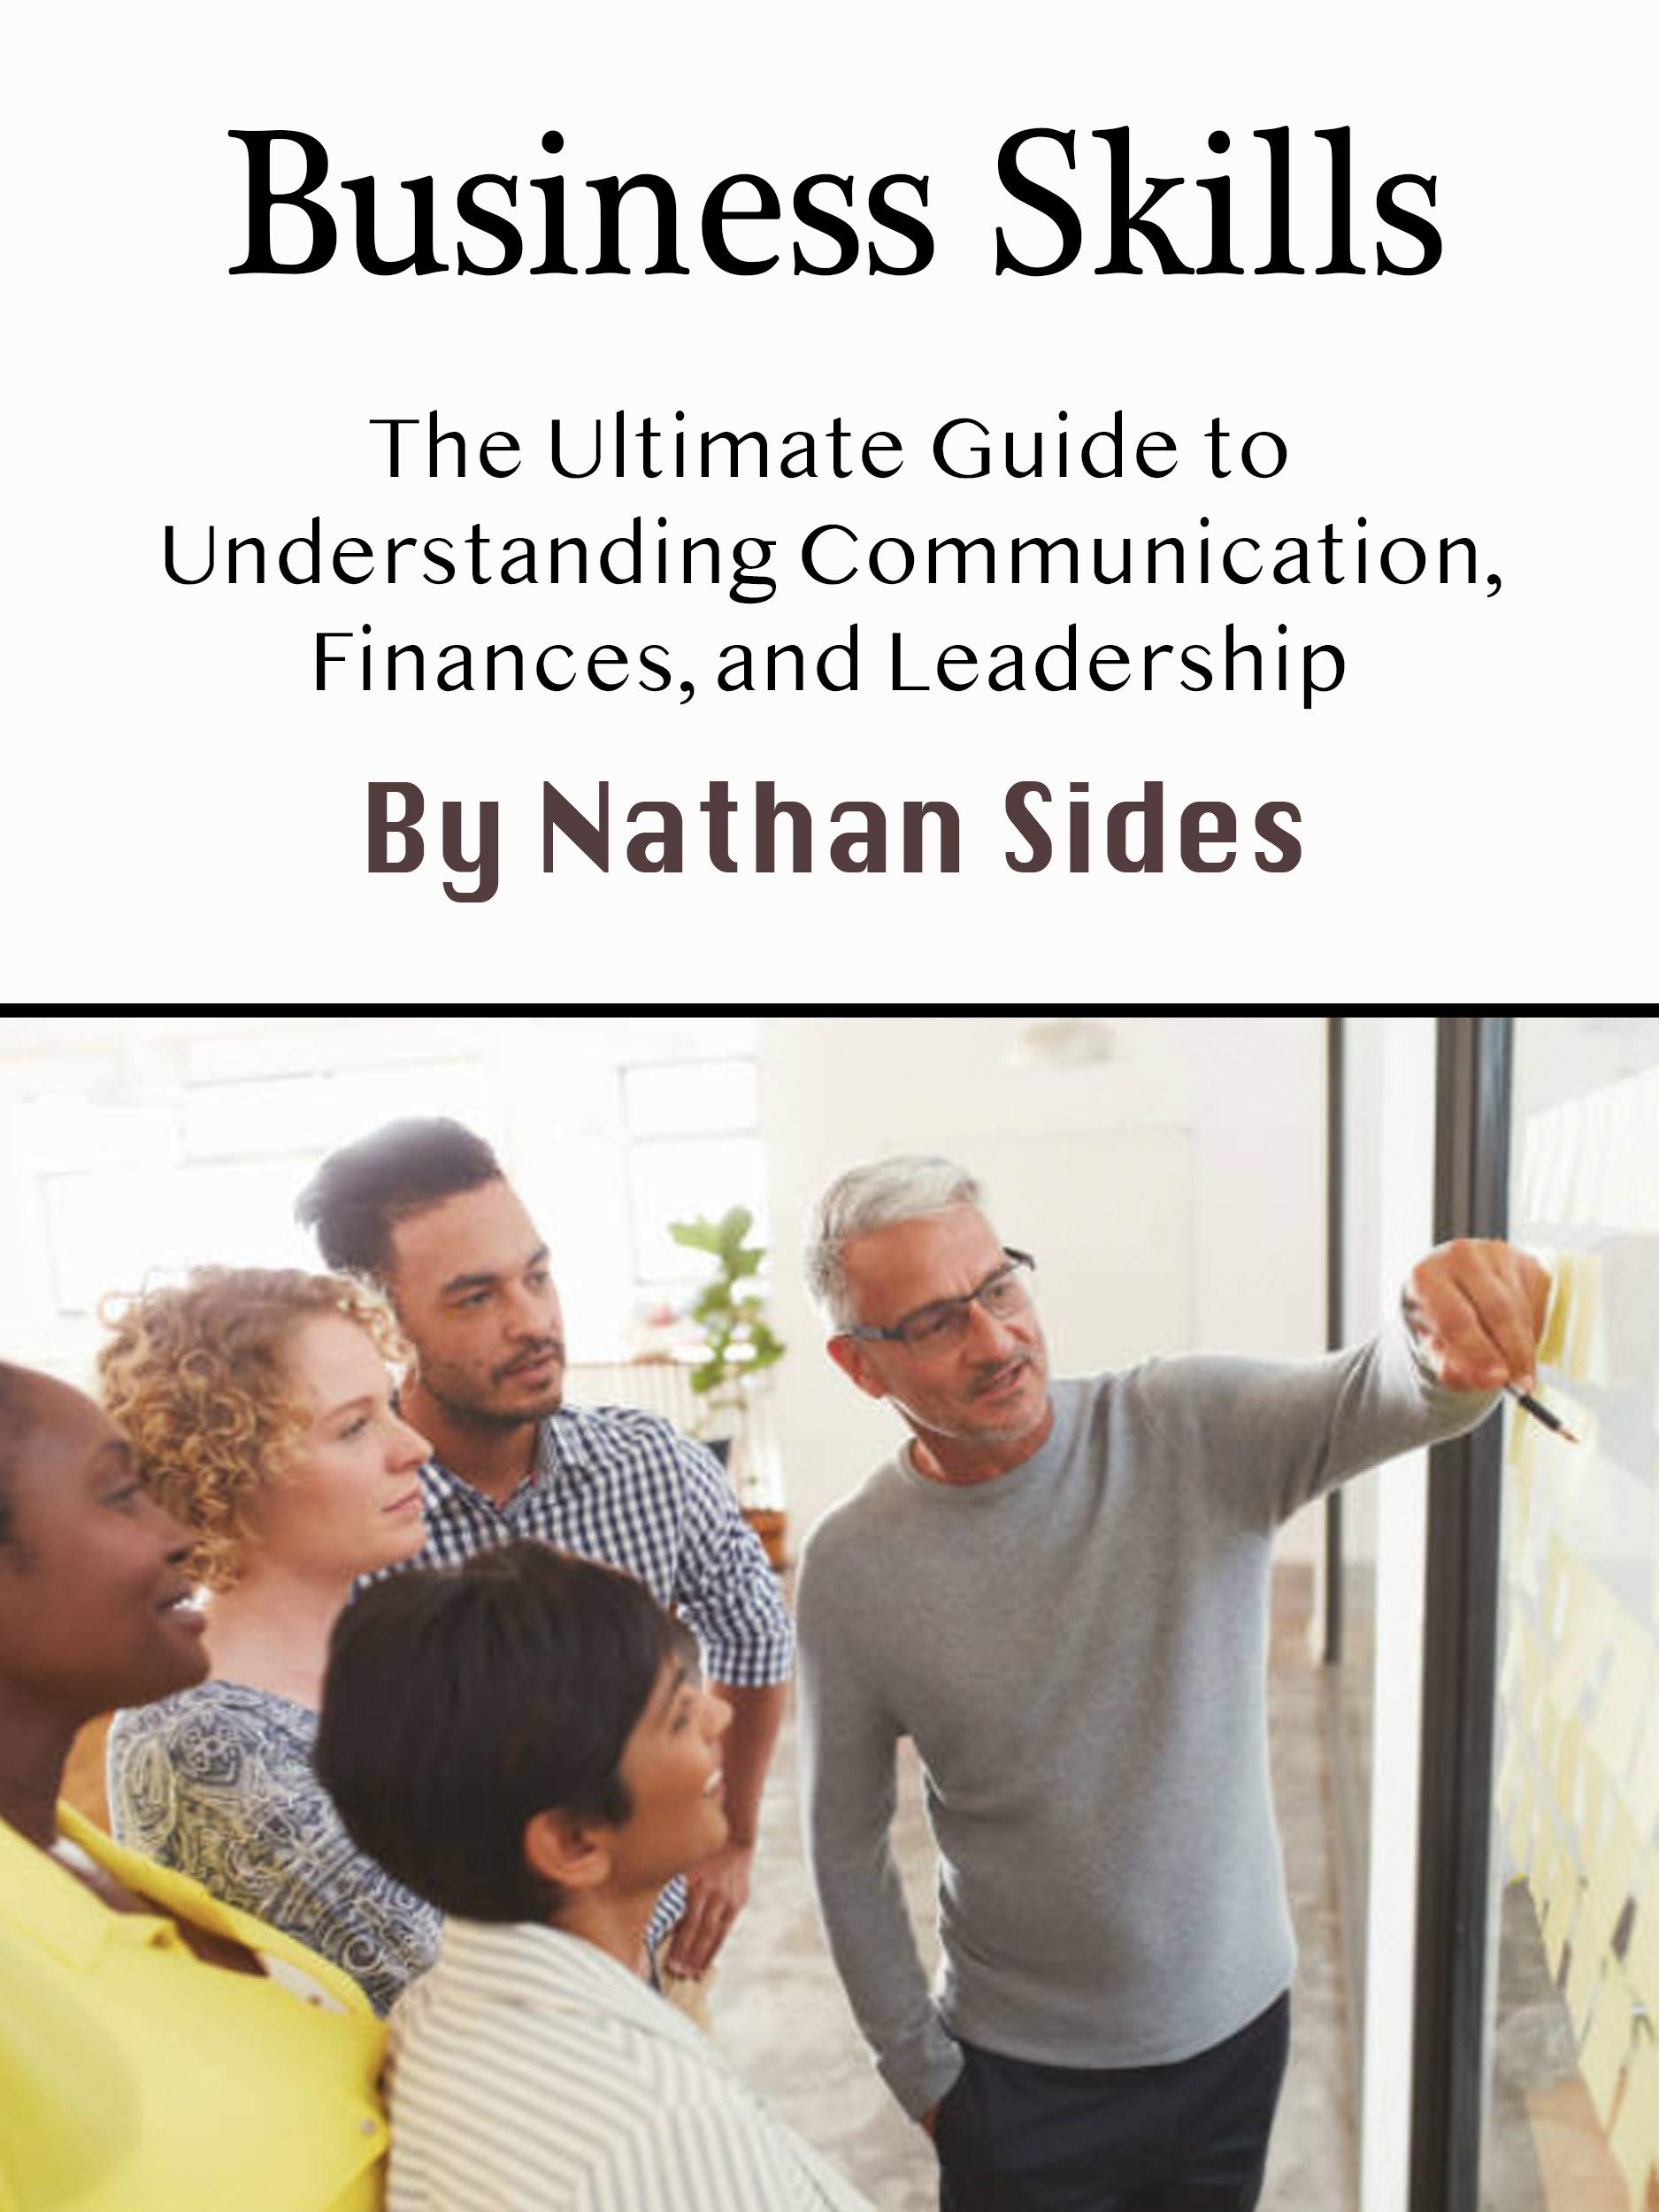 Business Skills: The Ultimate Guide to Understanding Communication, Finances, and Leadership